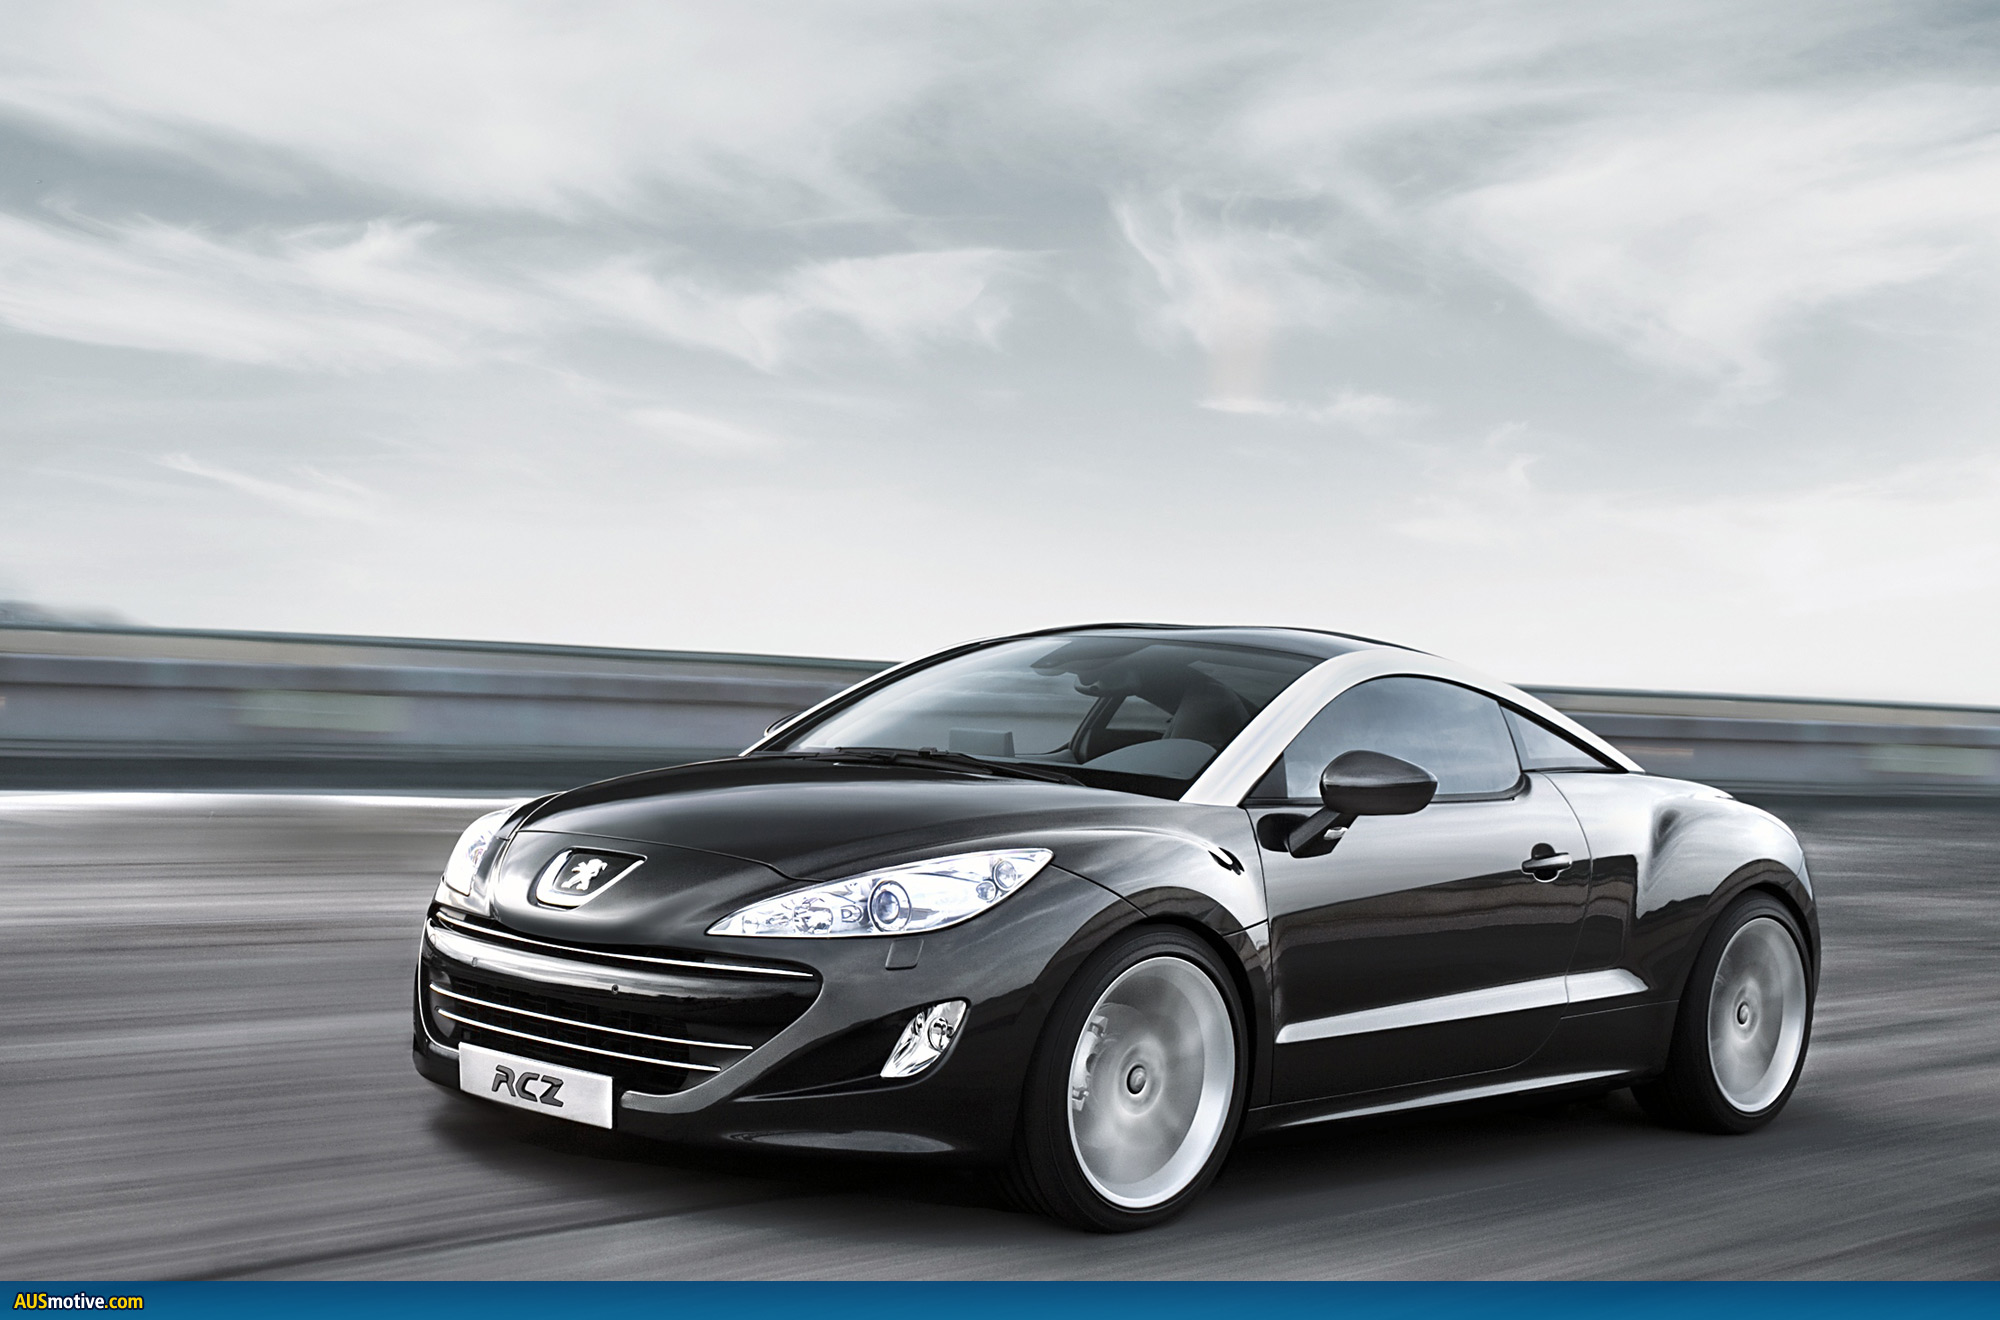 about showing us his car So here in full is the new Peugeot RCZ Photo Gallery Wallpapers HD